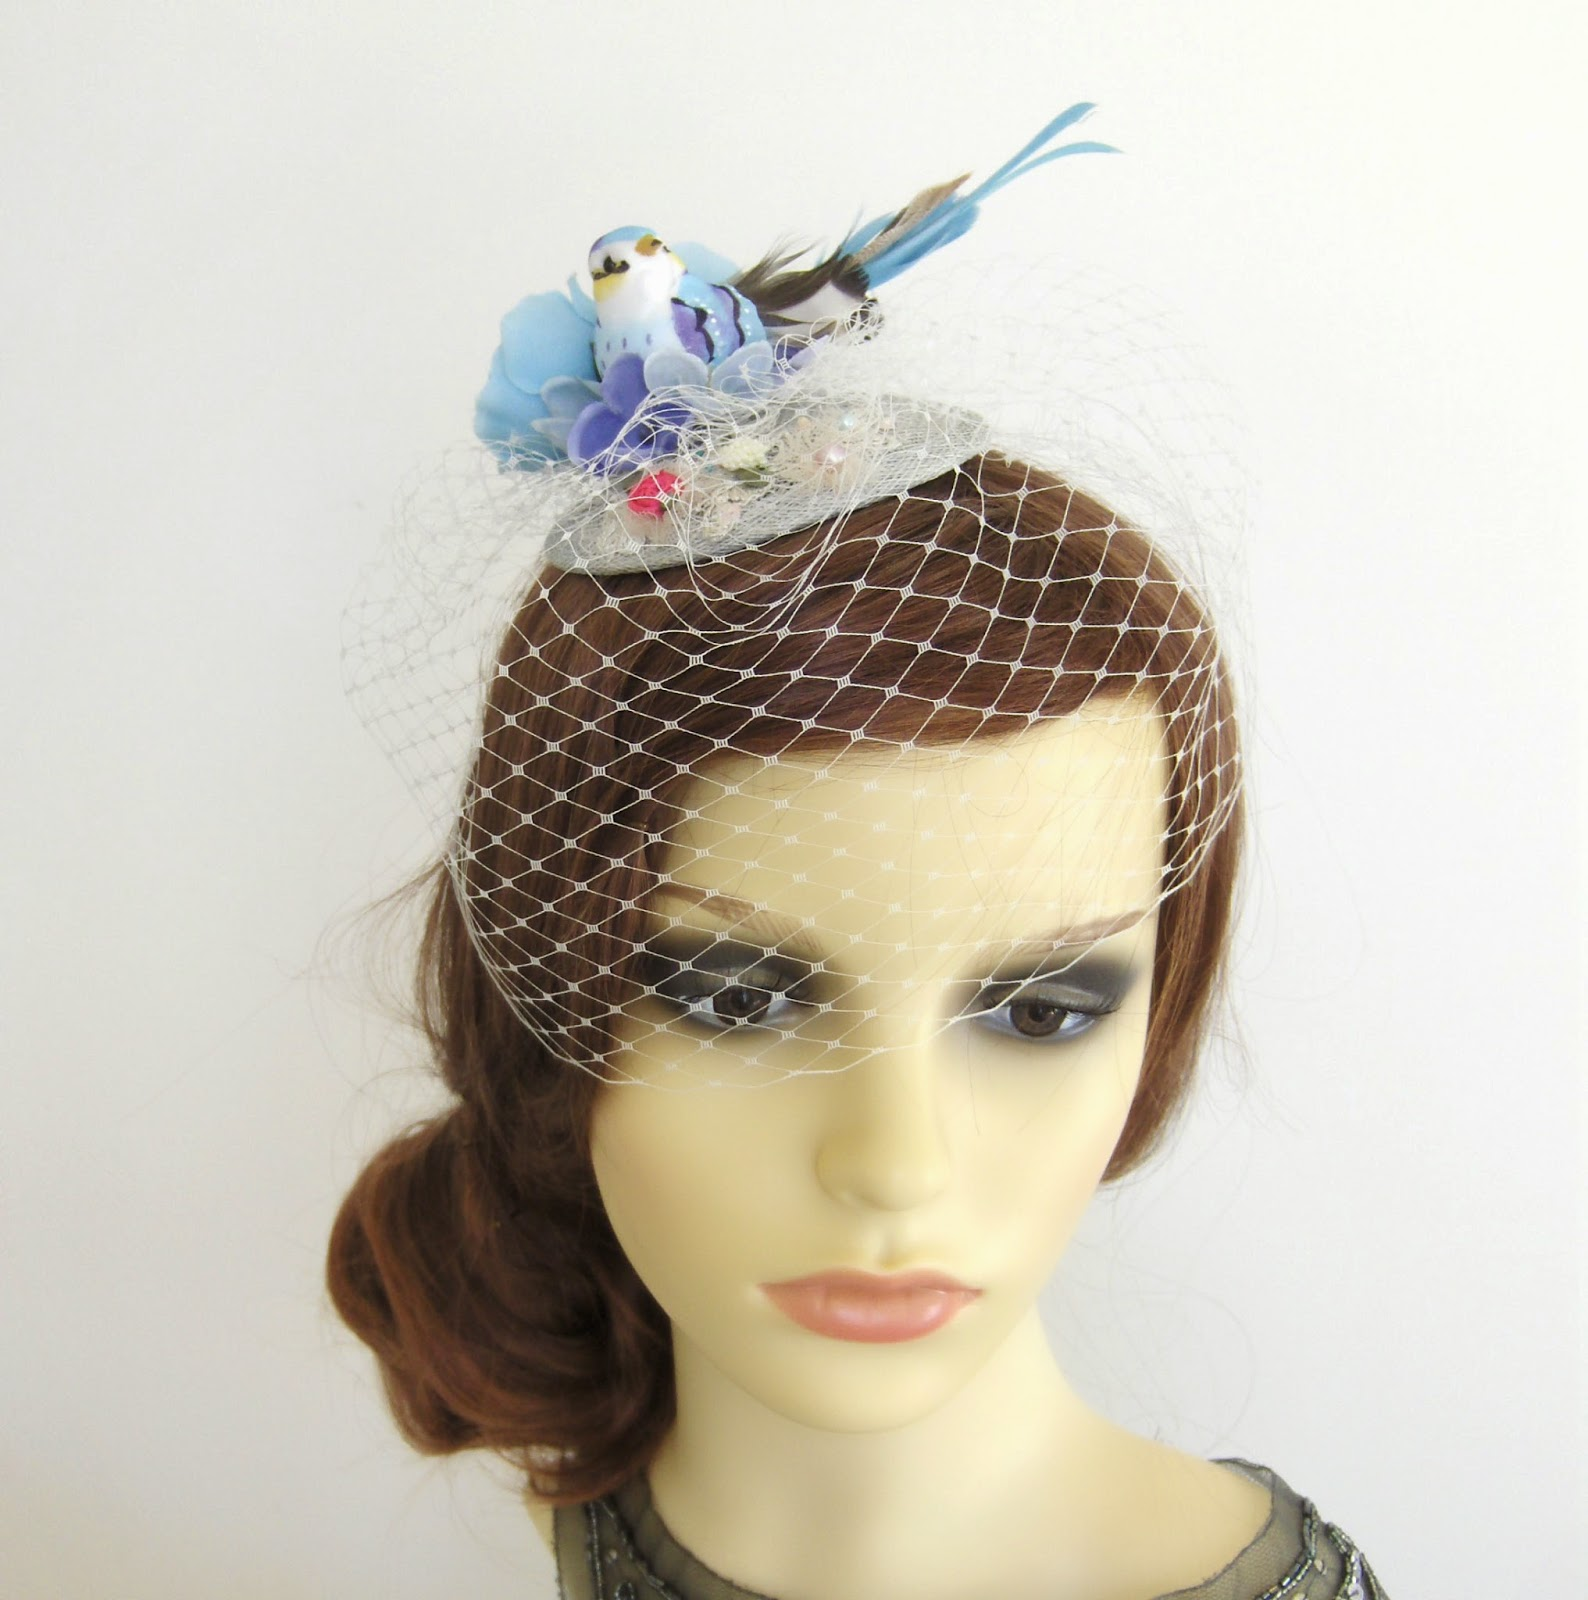 https://www.etsy.com/uk/listing/98542317/blue-bird-fascinator?ref=shop_home_active_8